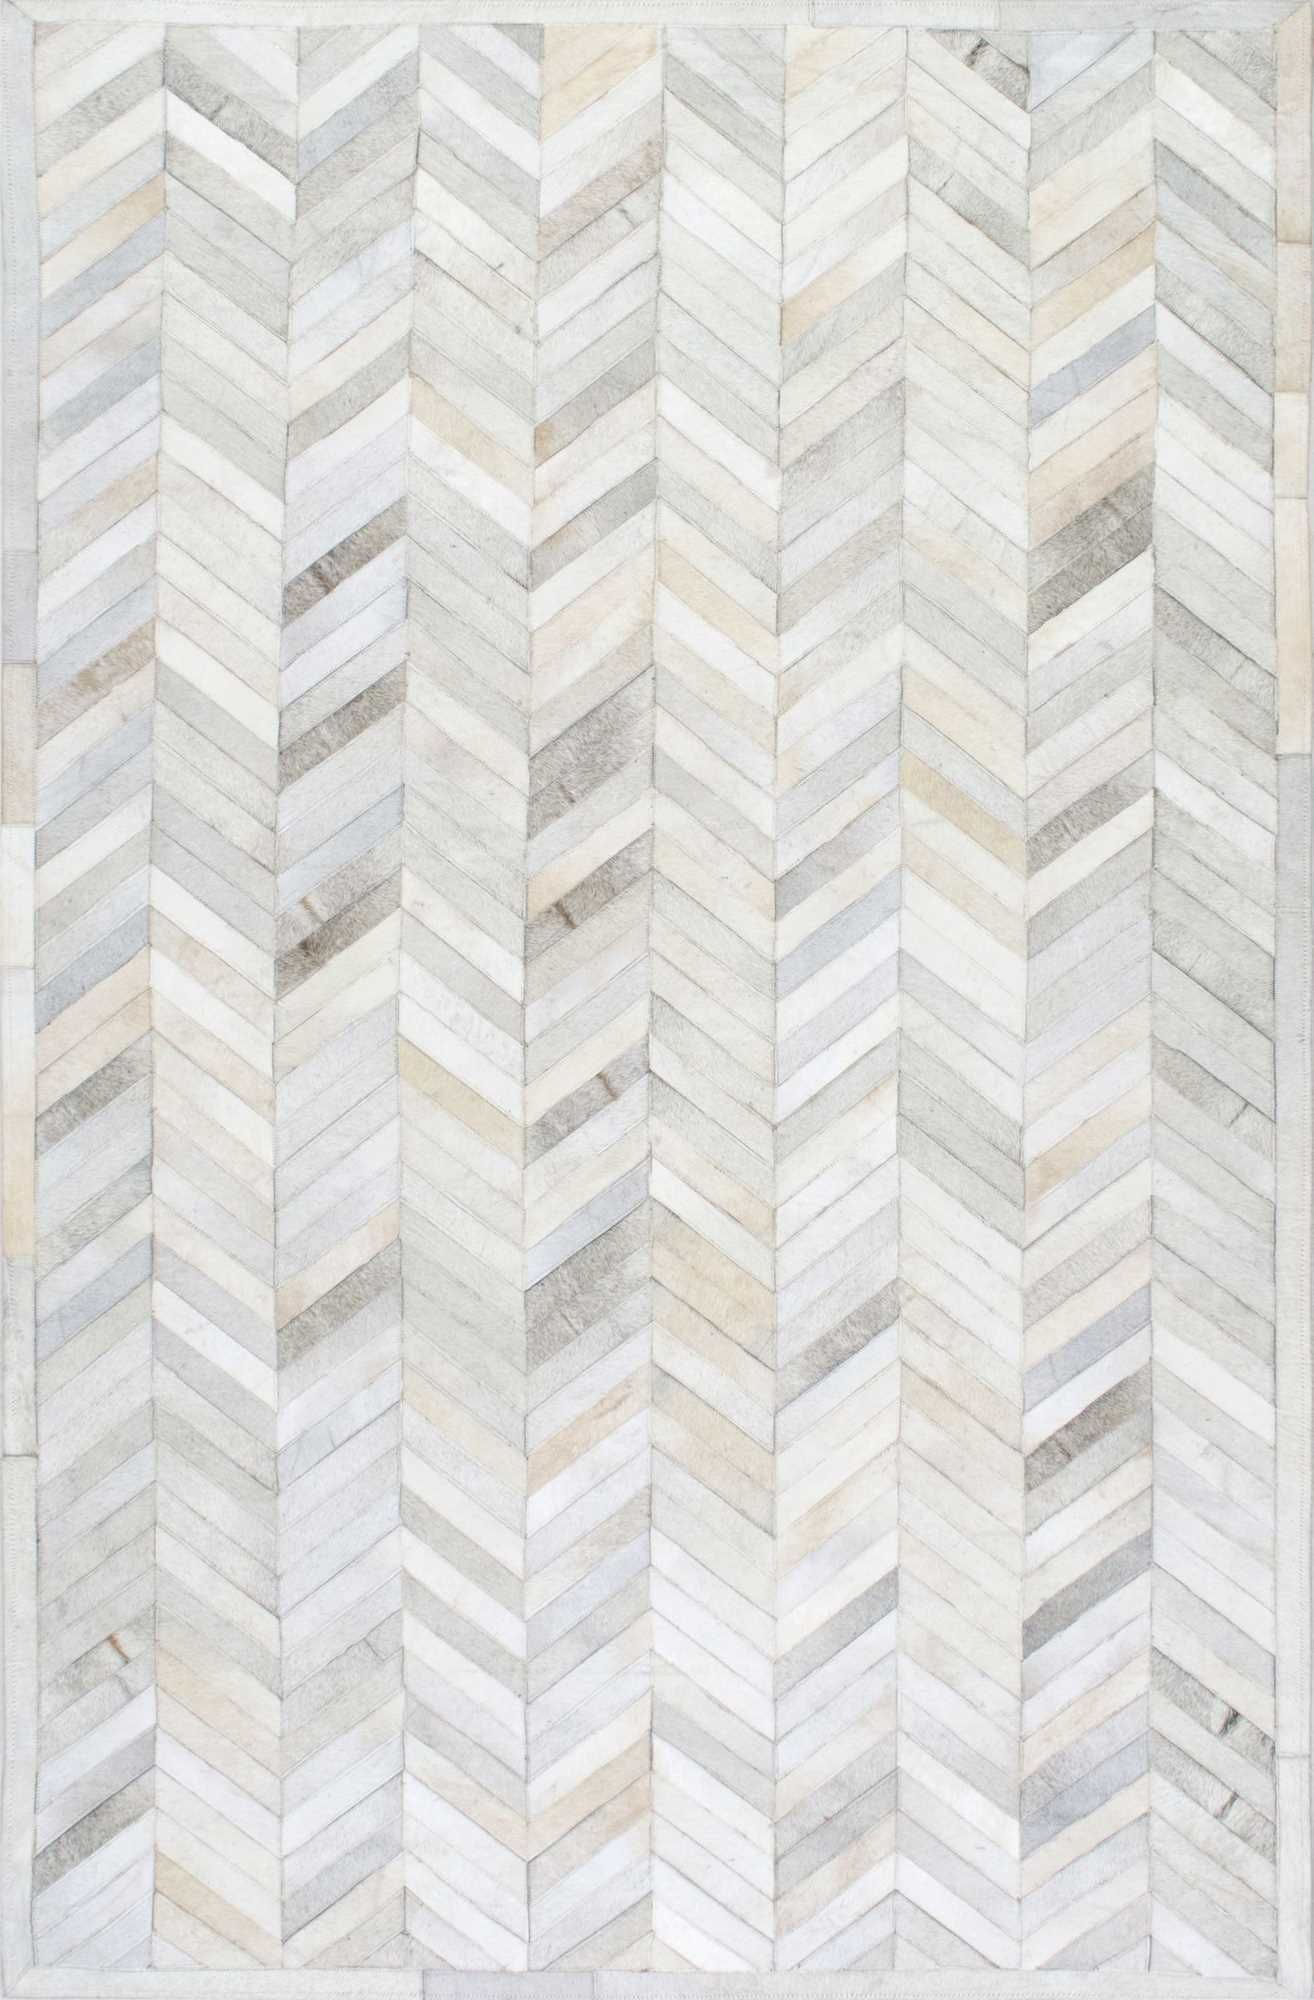 Explore Natural Rug, Chevron Rugs And More